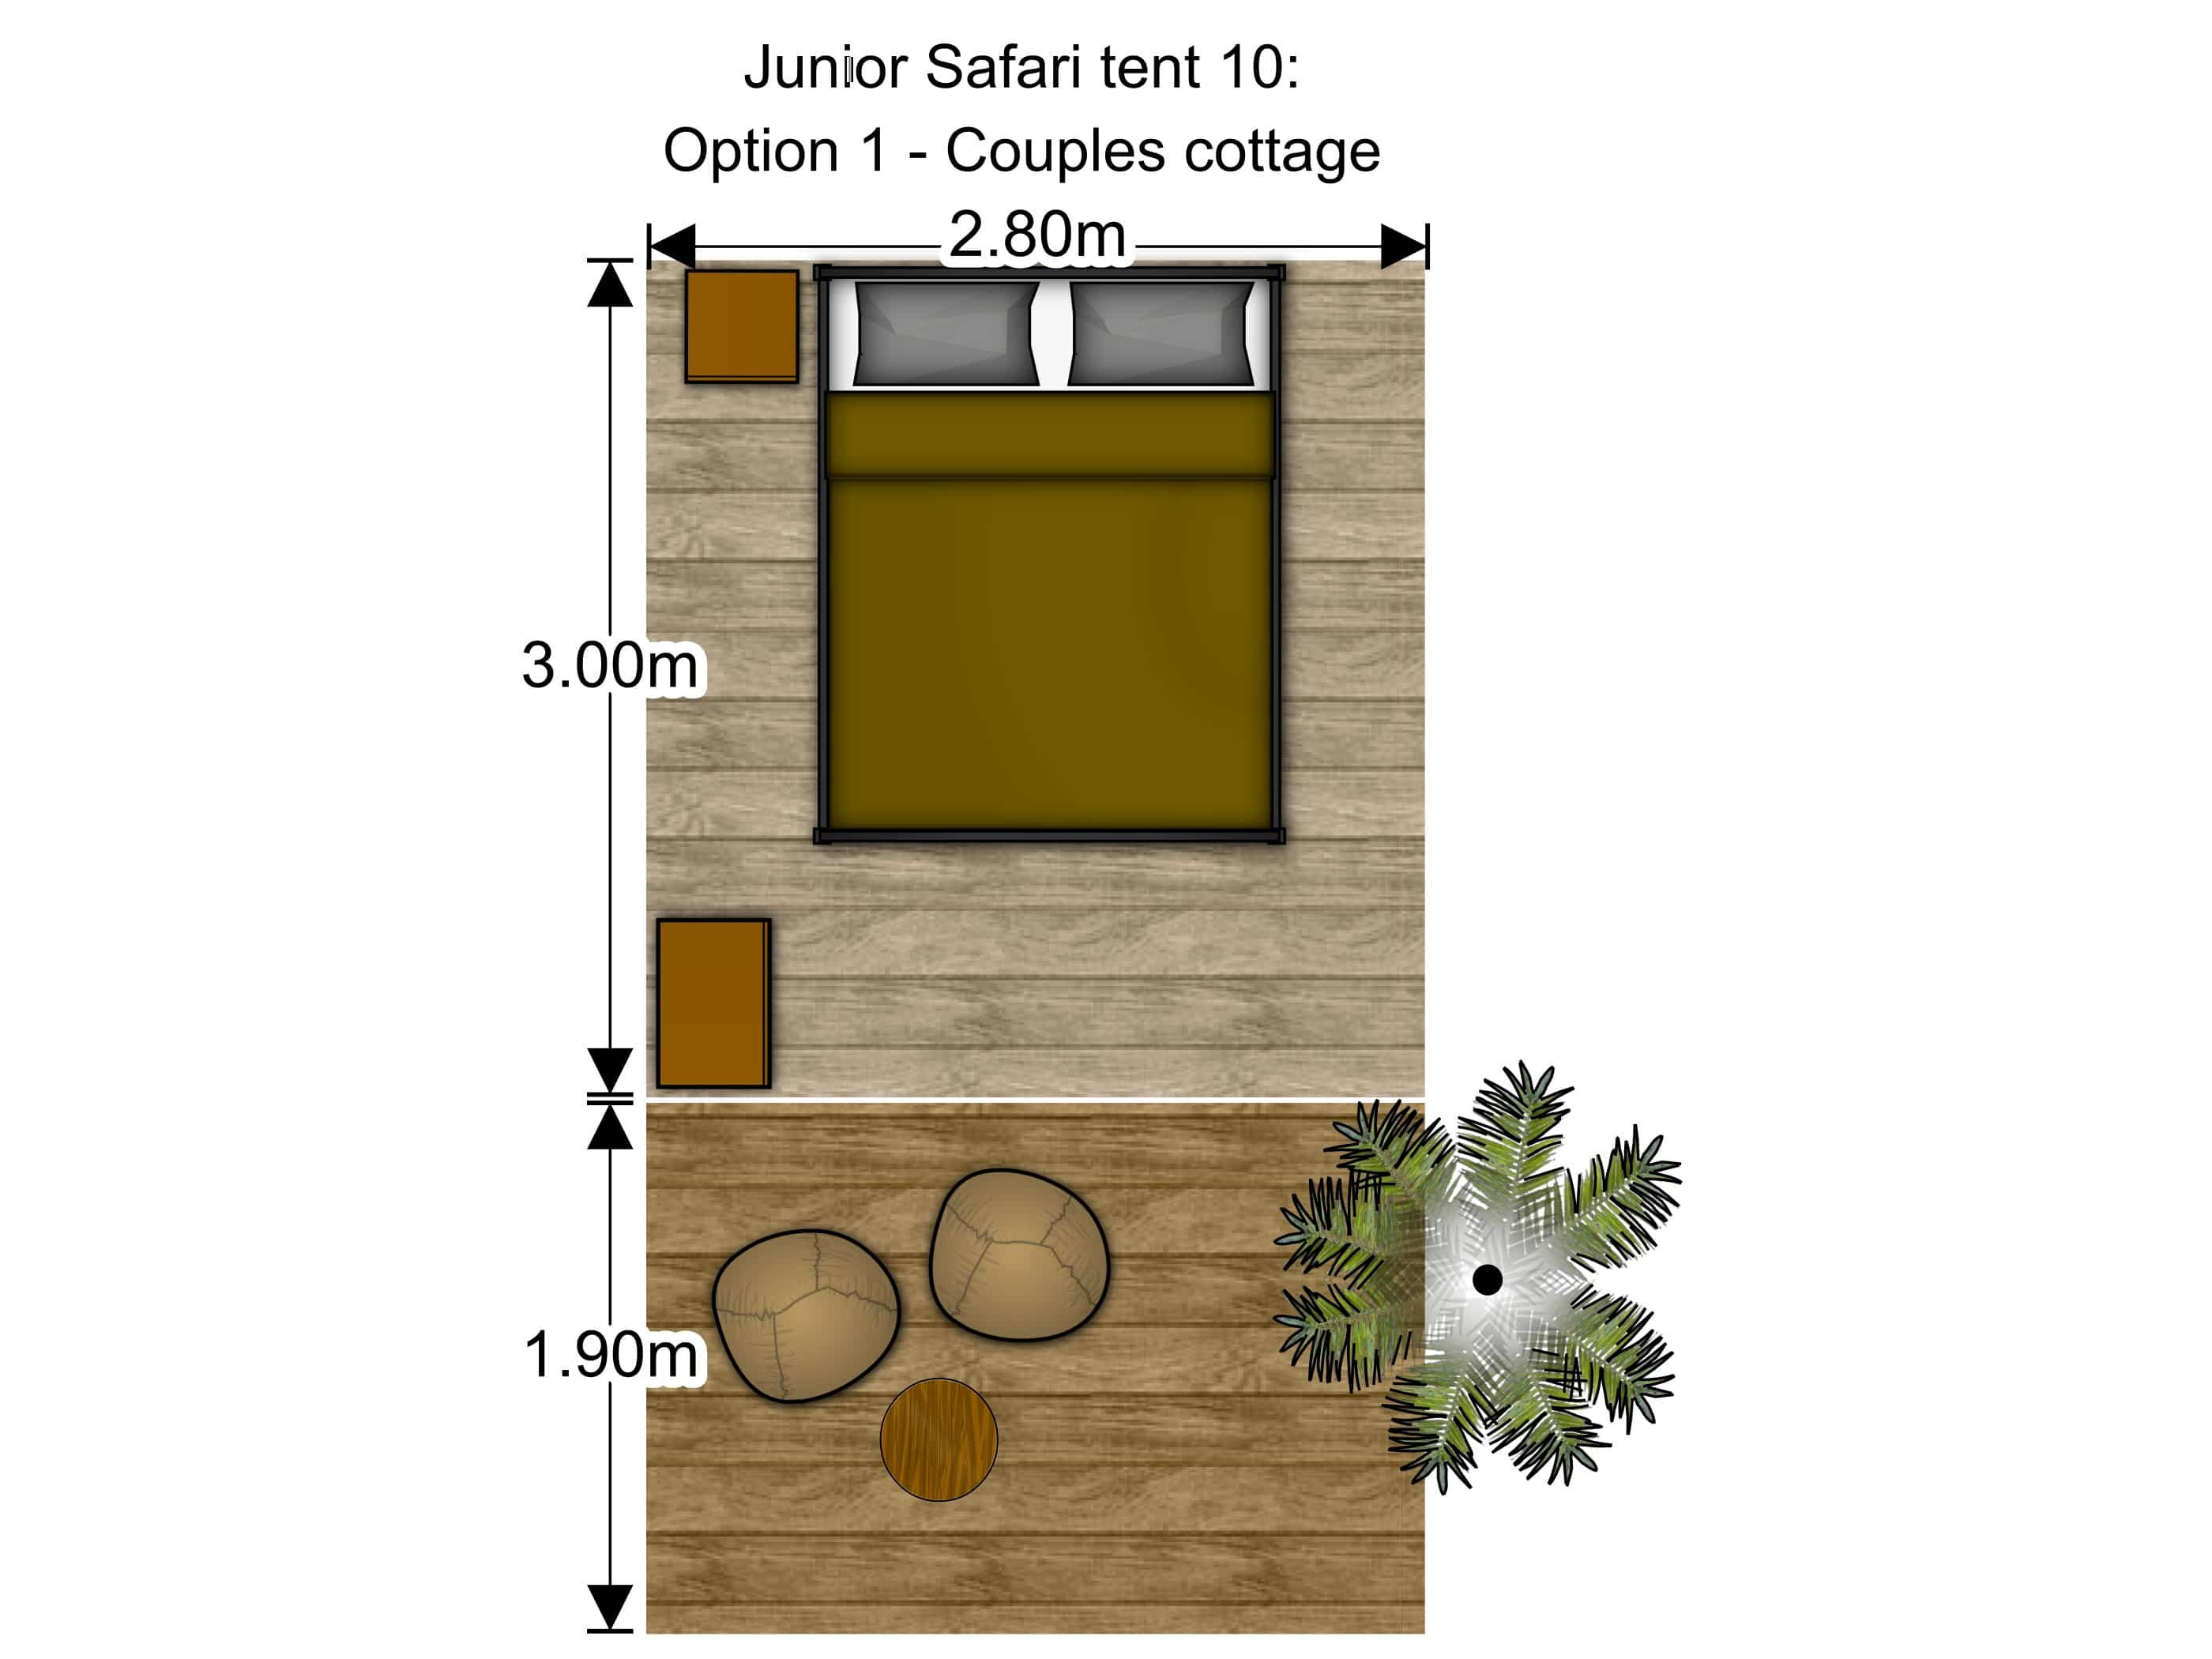 Small luxury glamping tent floorplan